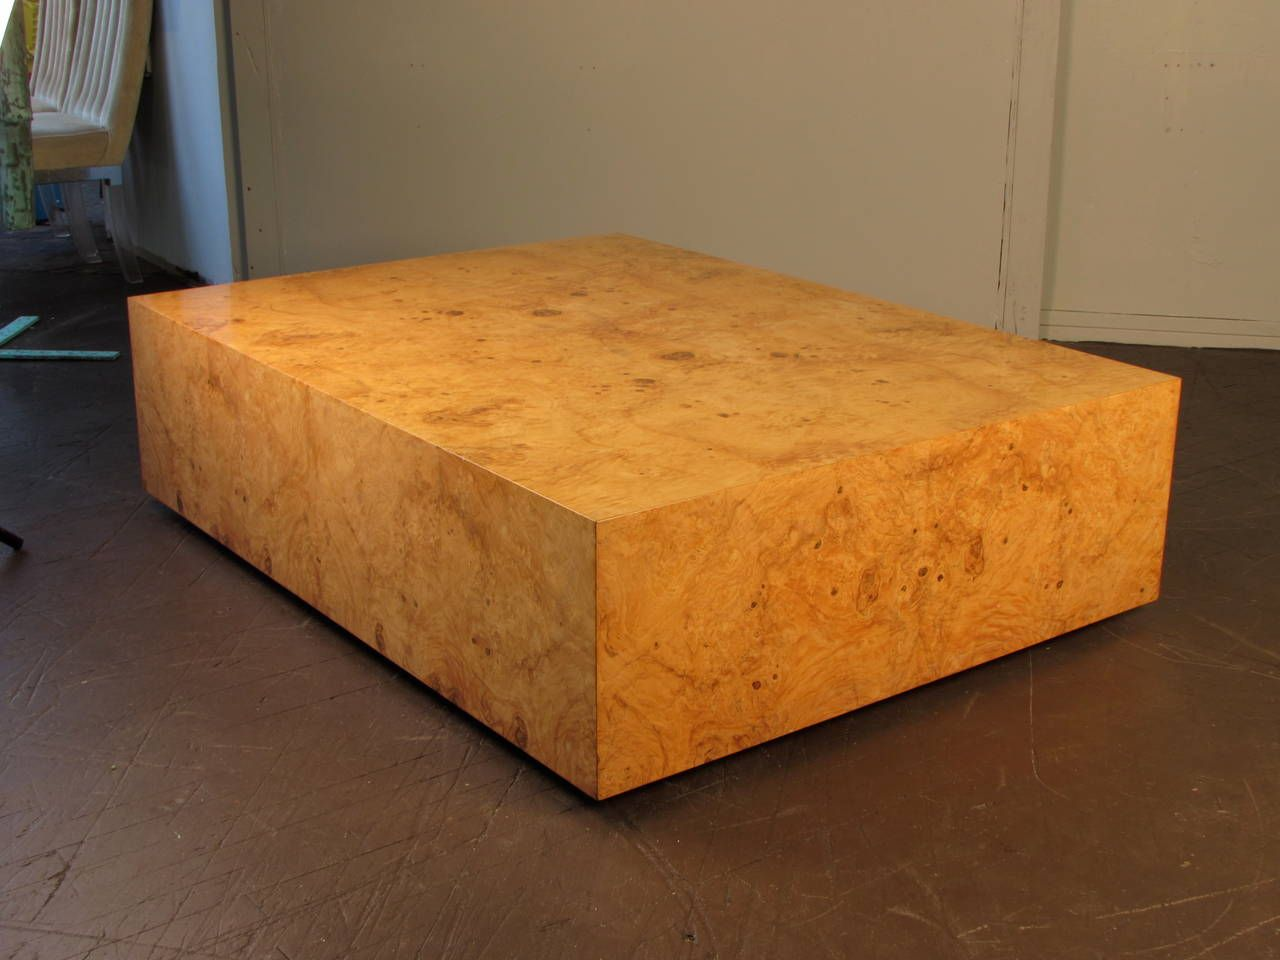 Enormous burled wood coffee table by milo baughman for